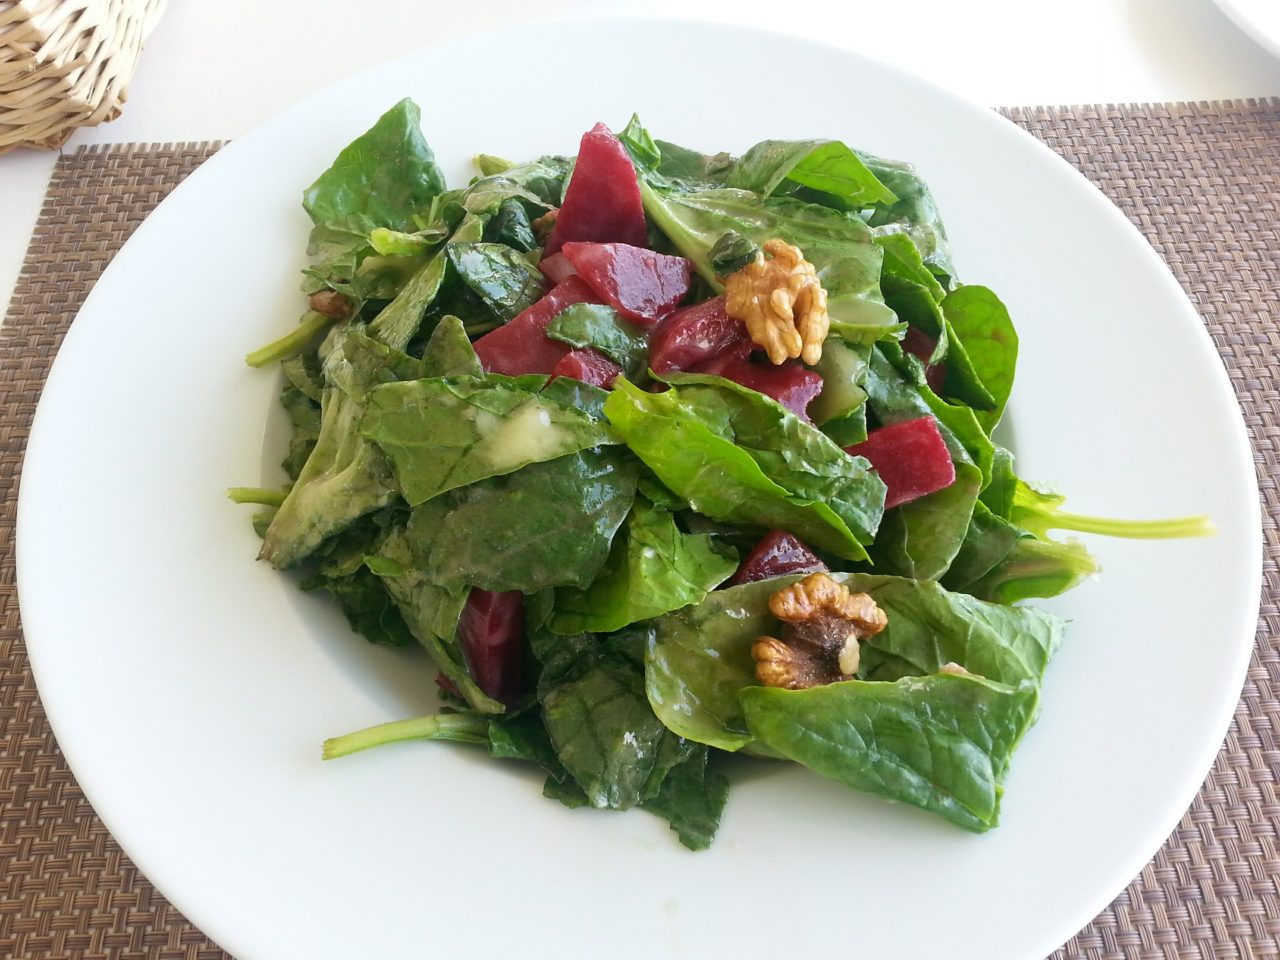 Beet salad on bed of greens